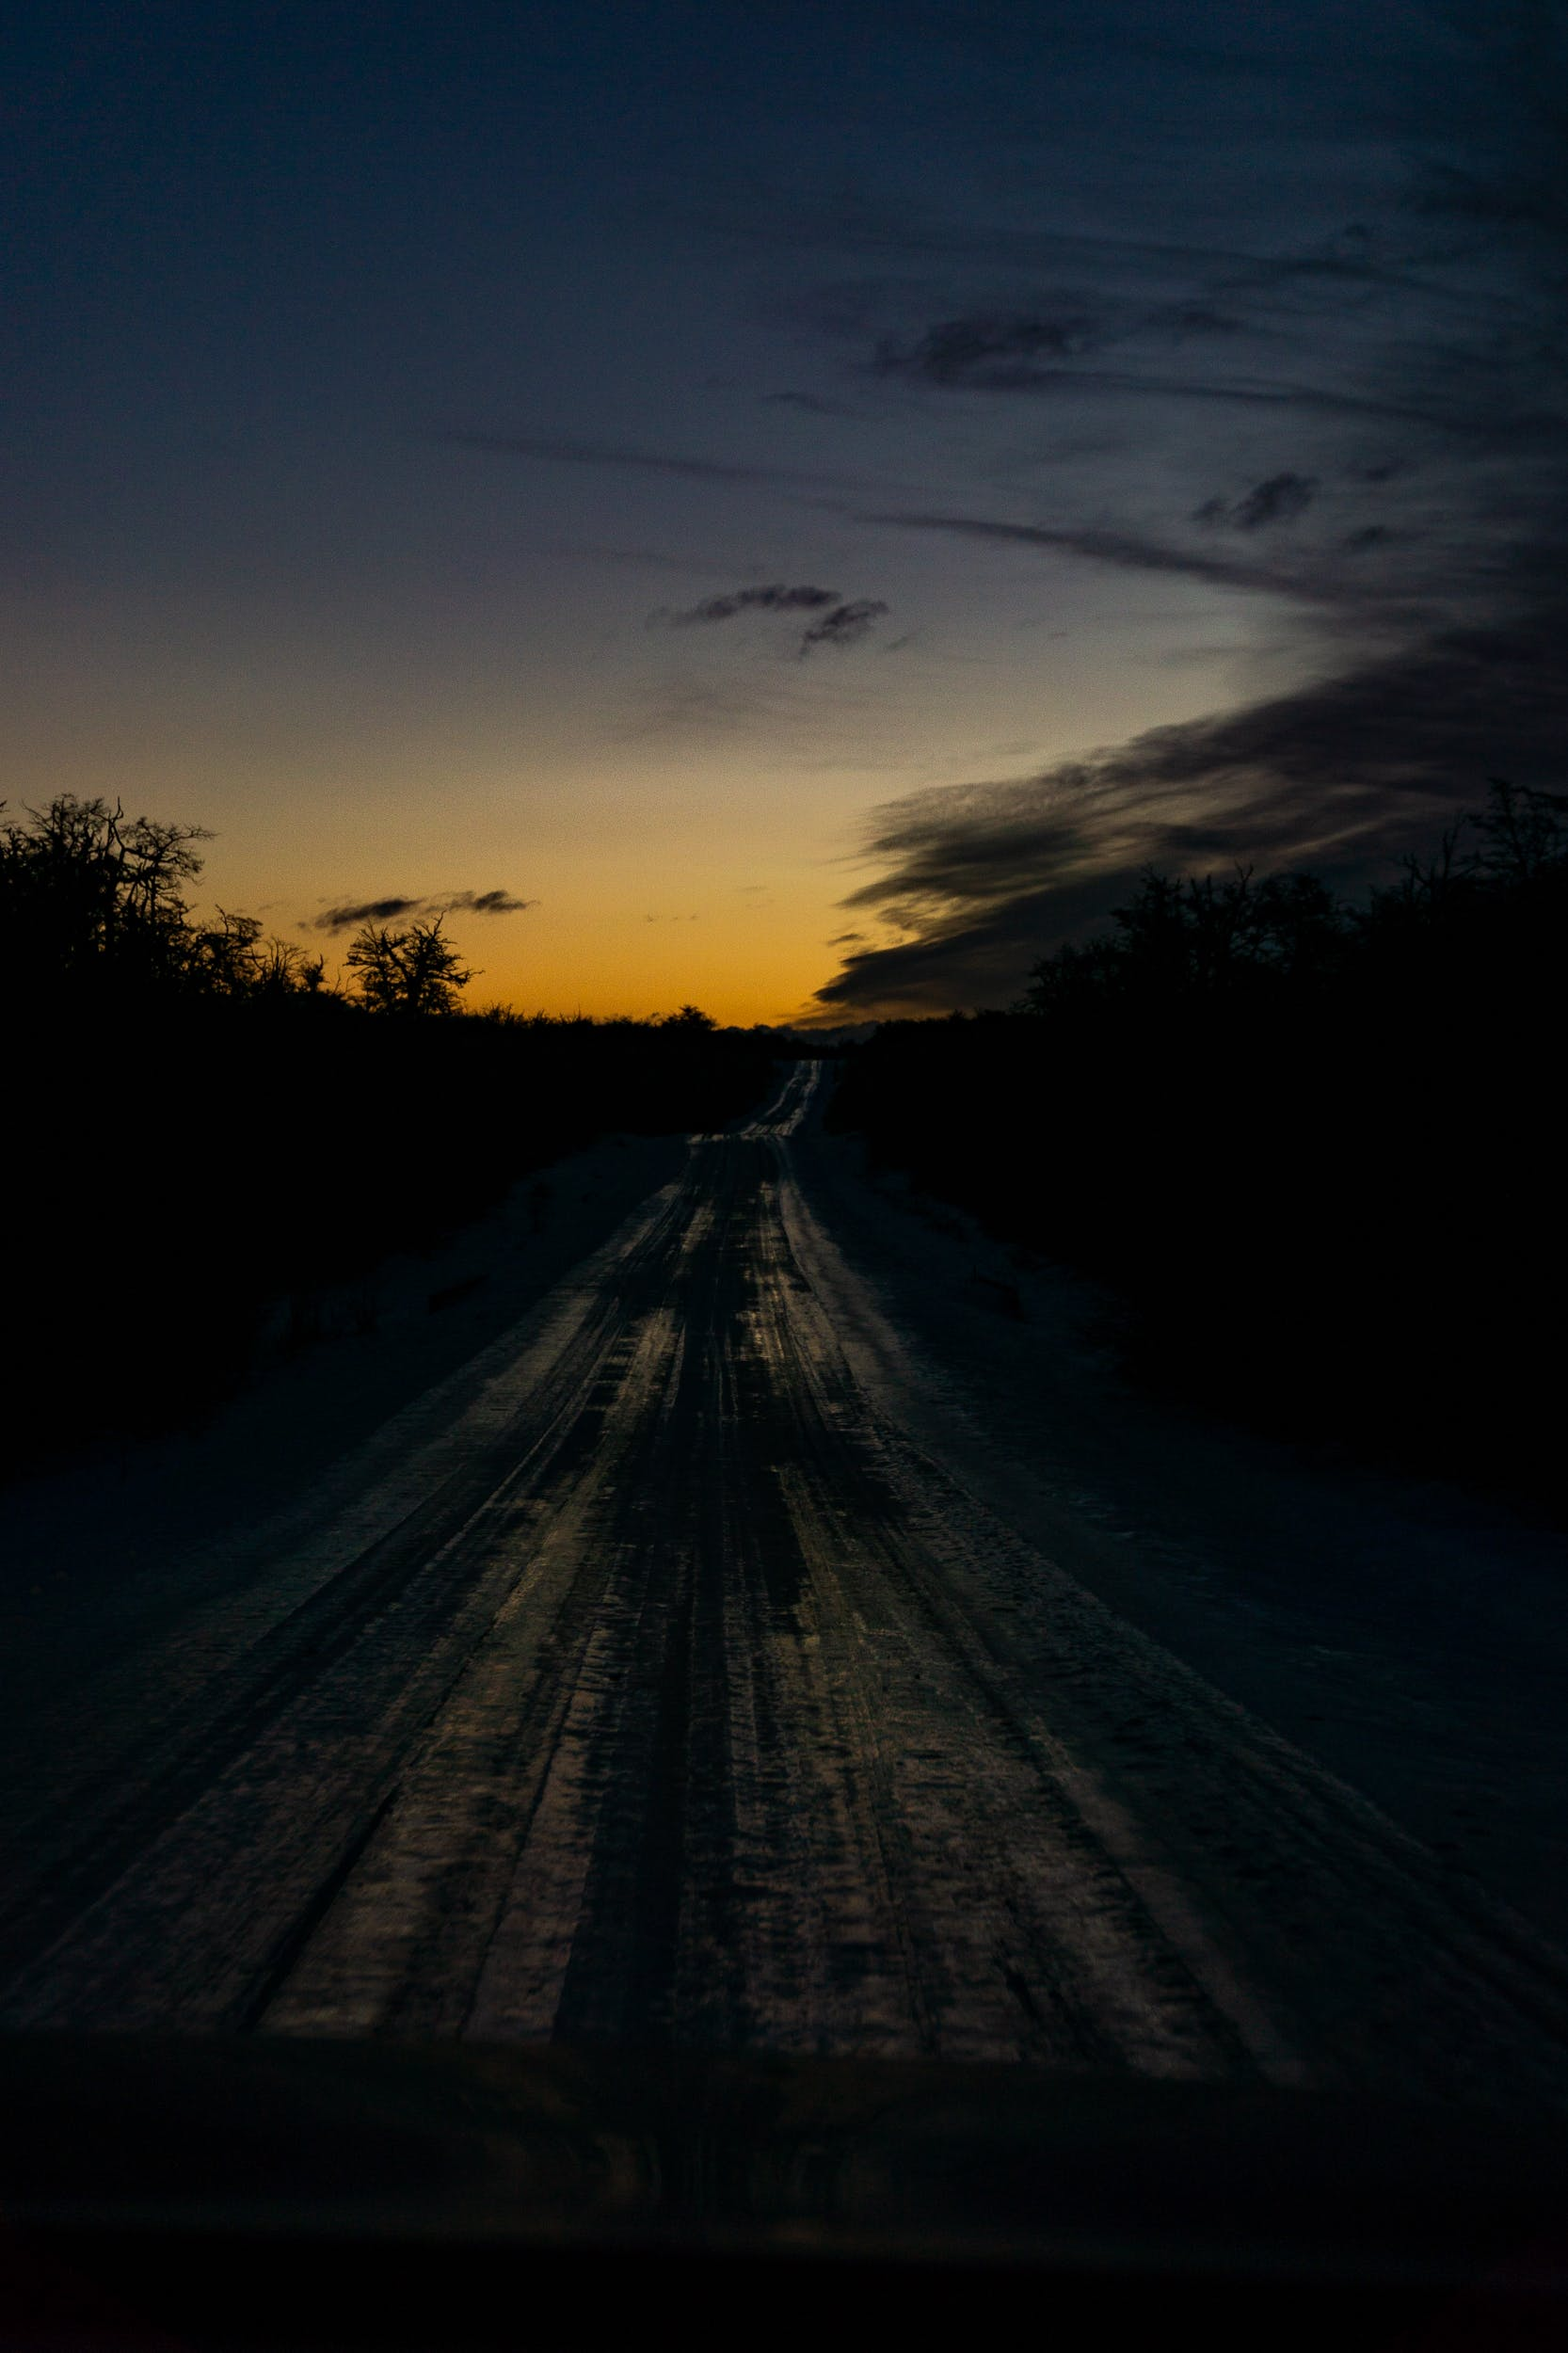 Free stock photo of light, road, dawn, landscape